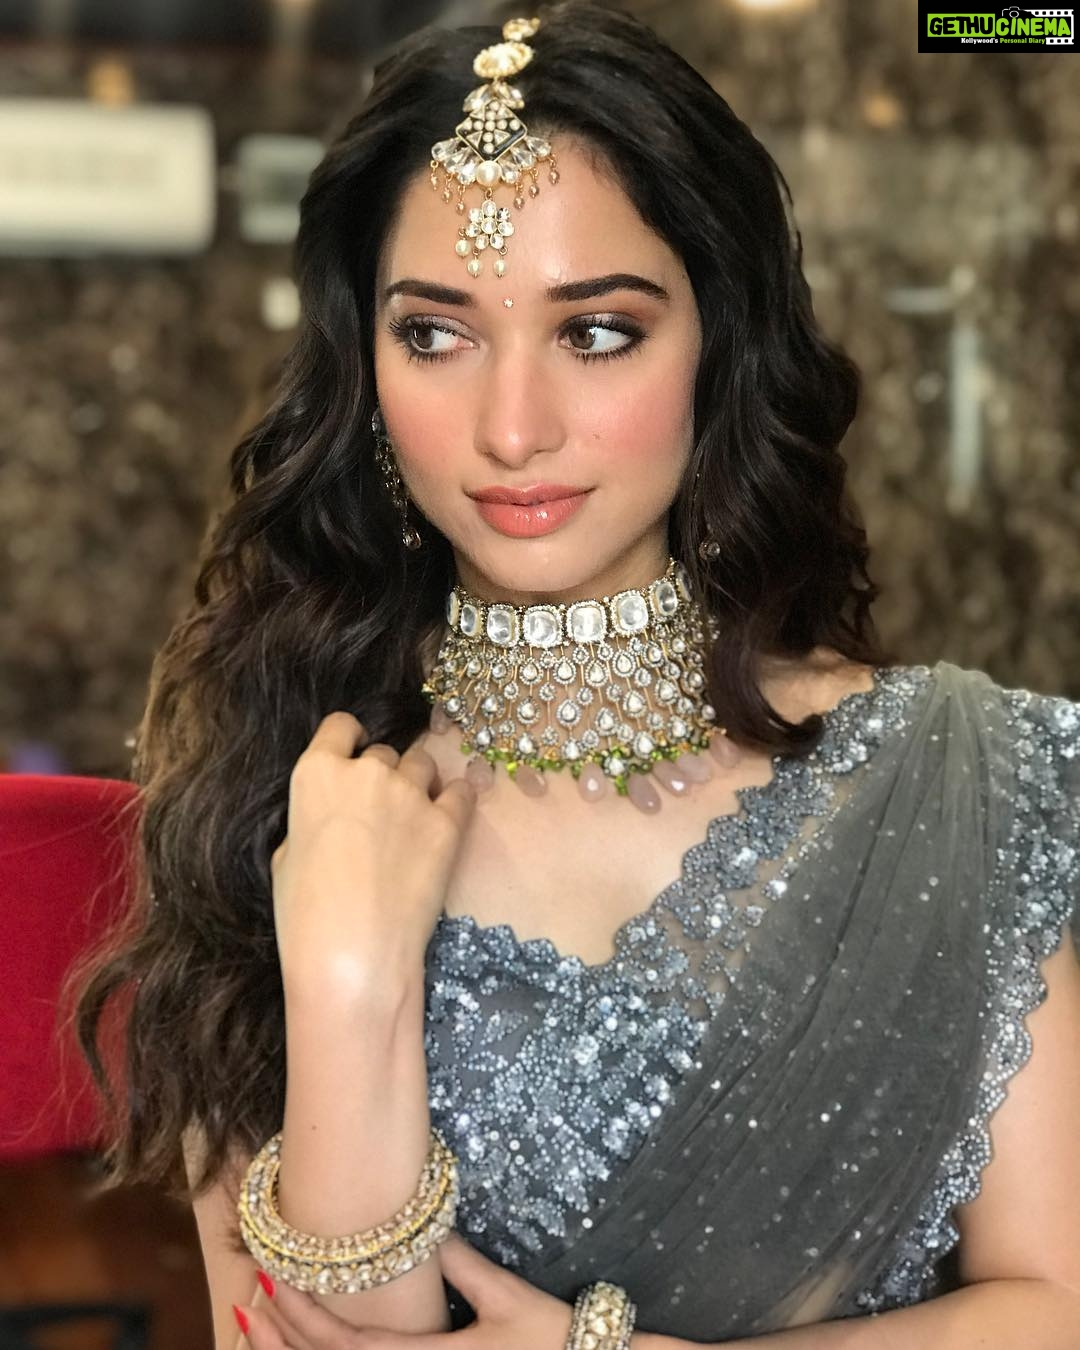 Tamannaah Bhatia Saree Traditional Look Wallpaper Gethu Cinema